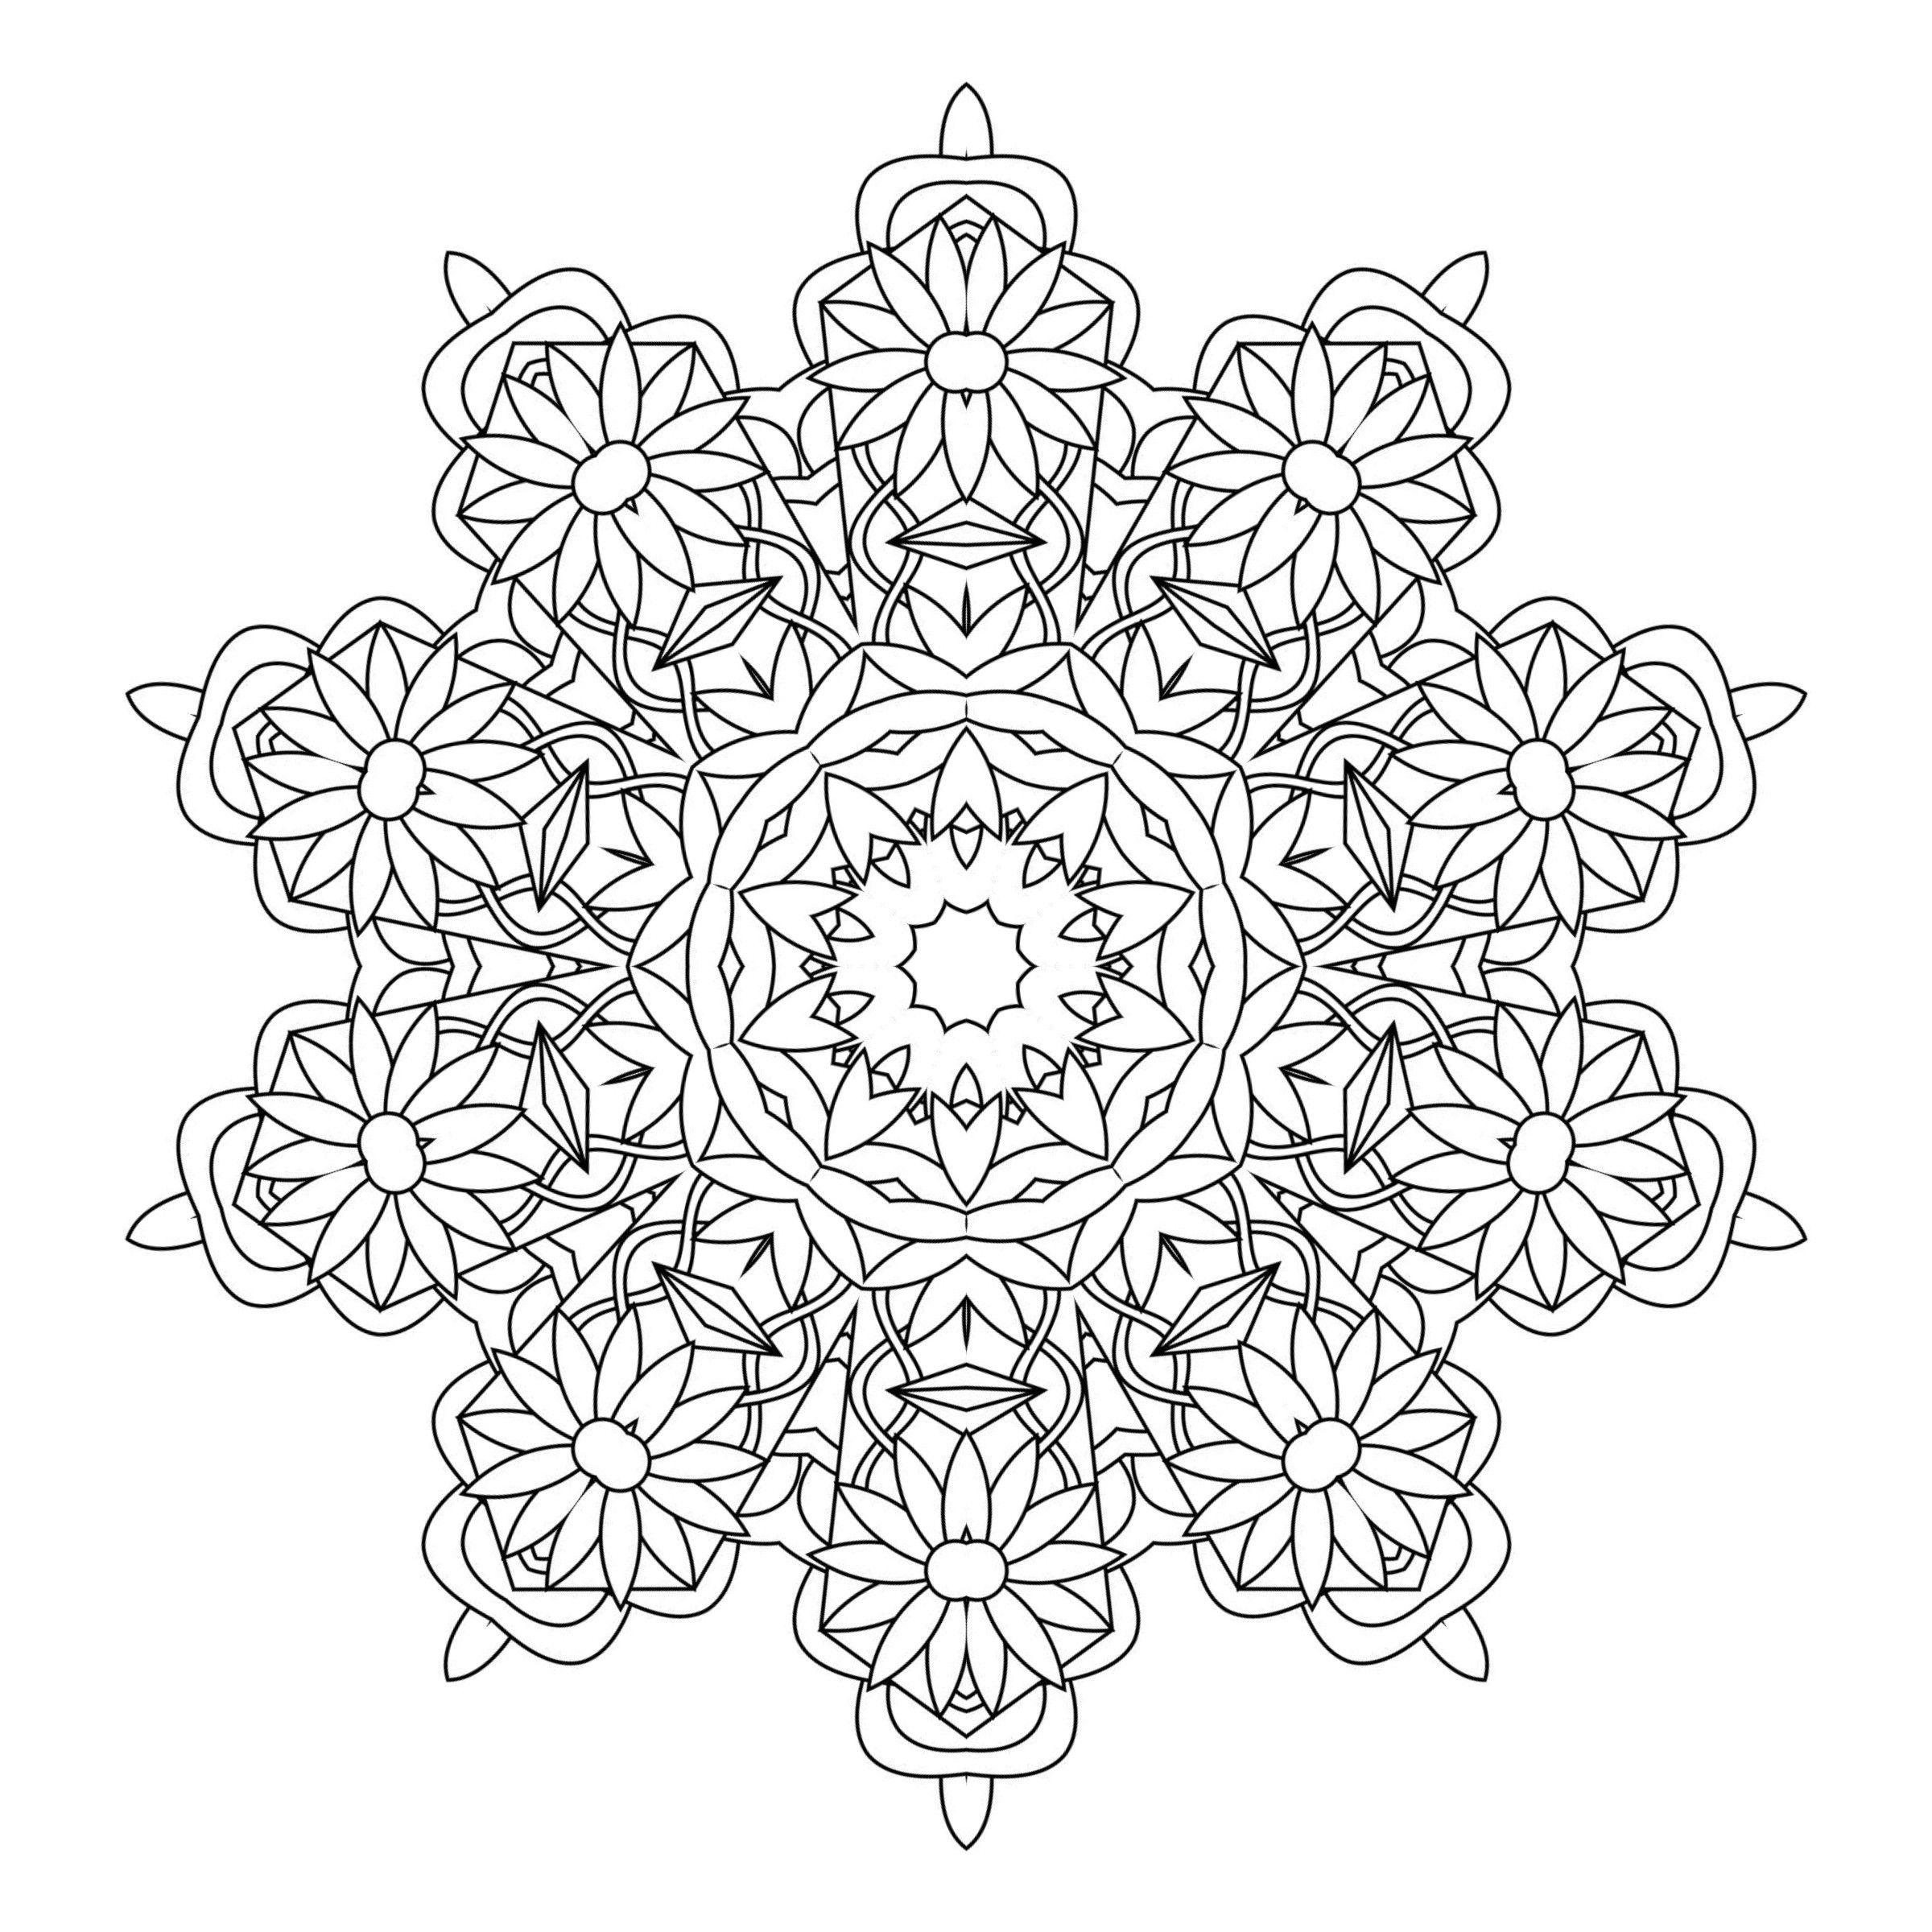 kaleidoscope coloring pages printable kaleidoscope coloring pages for adults at coloring kaleidoscope pages